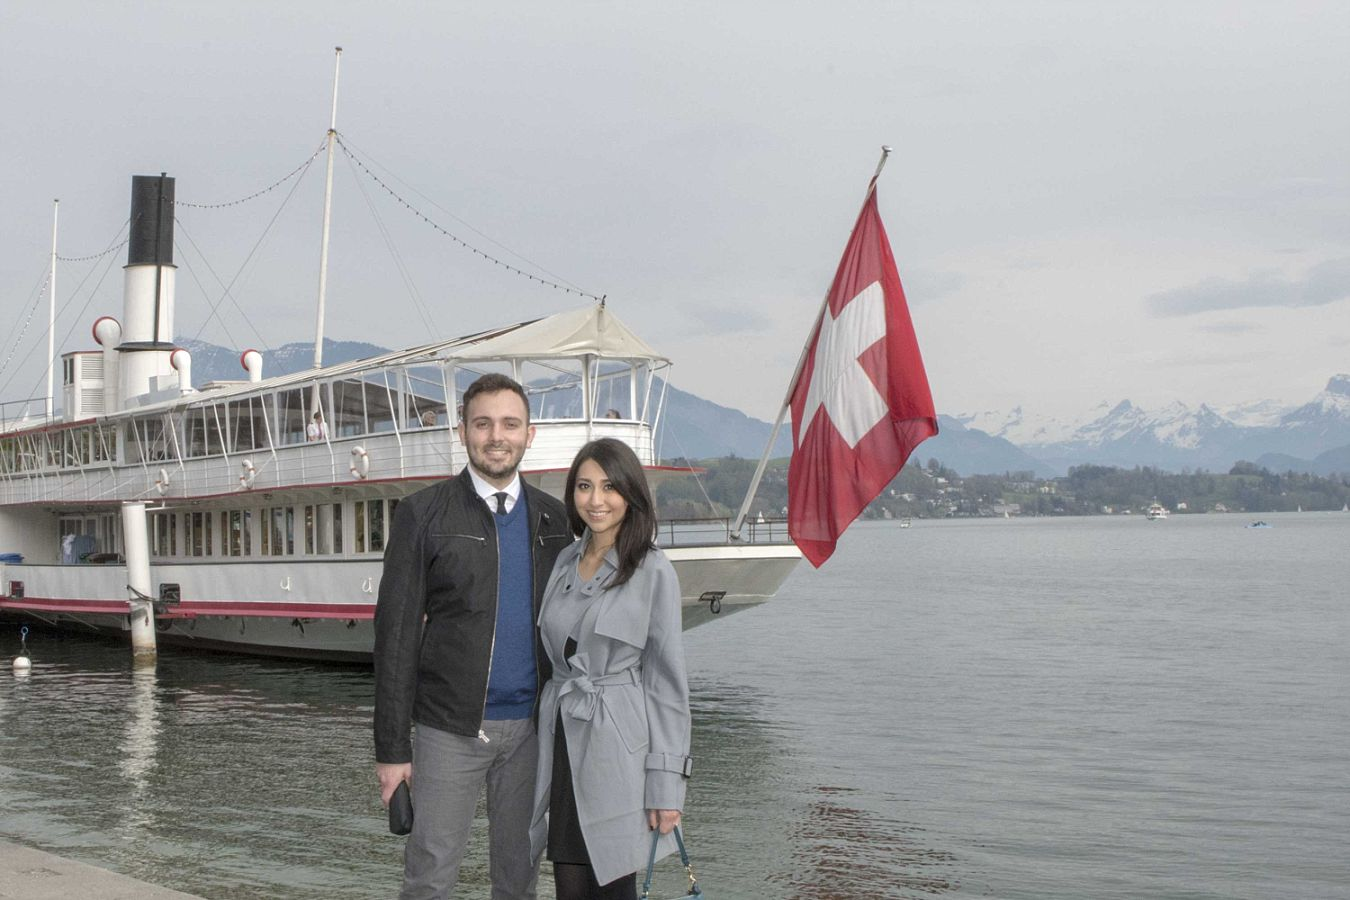 Engagement photo shoot in Lucerne